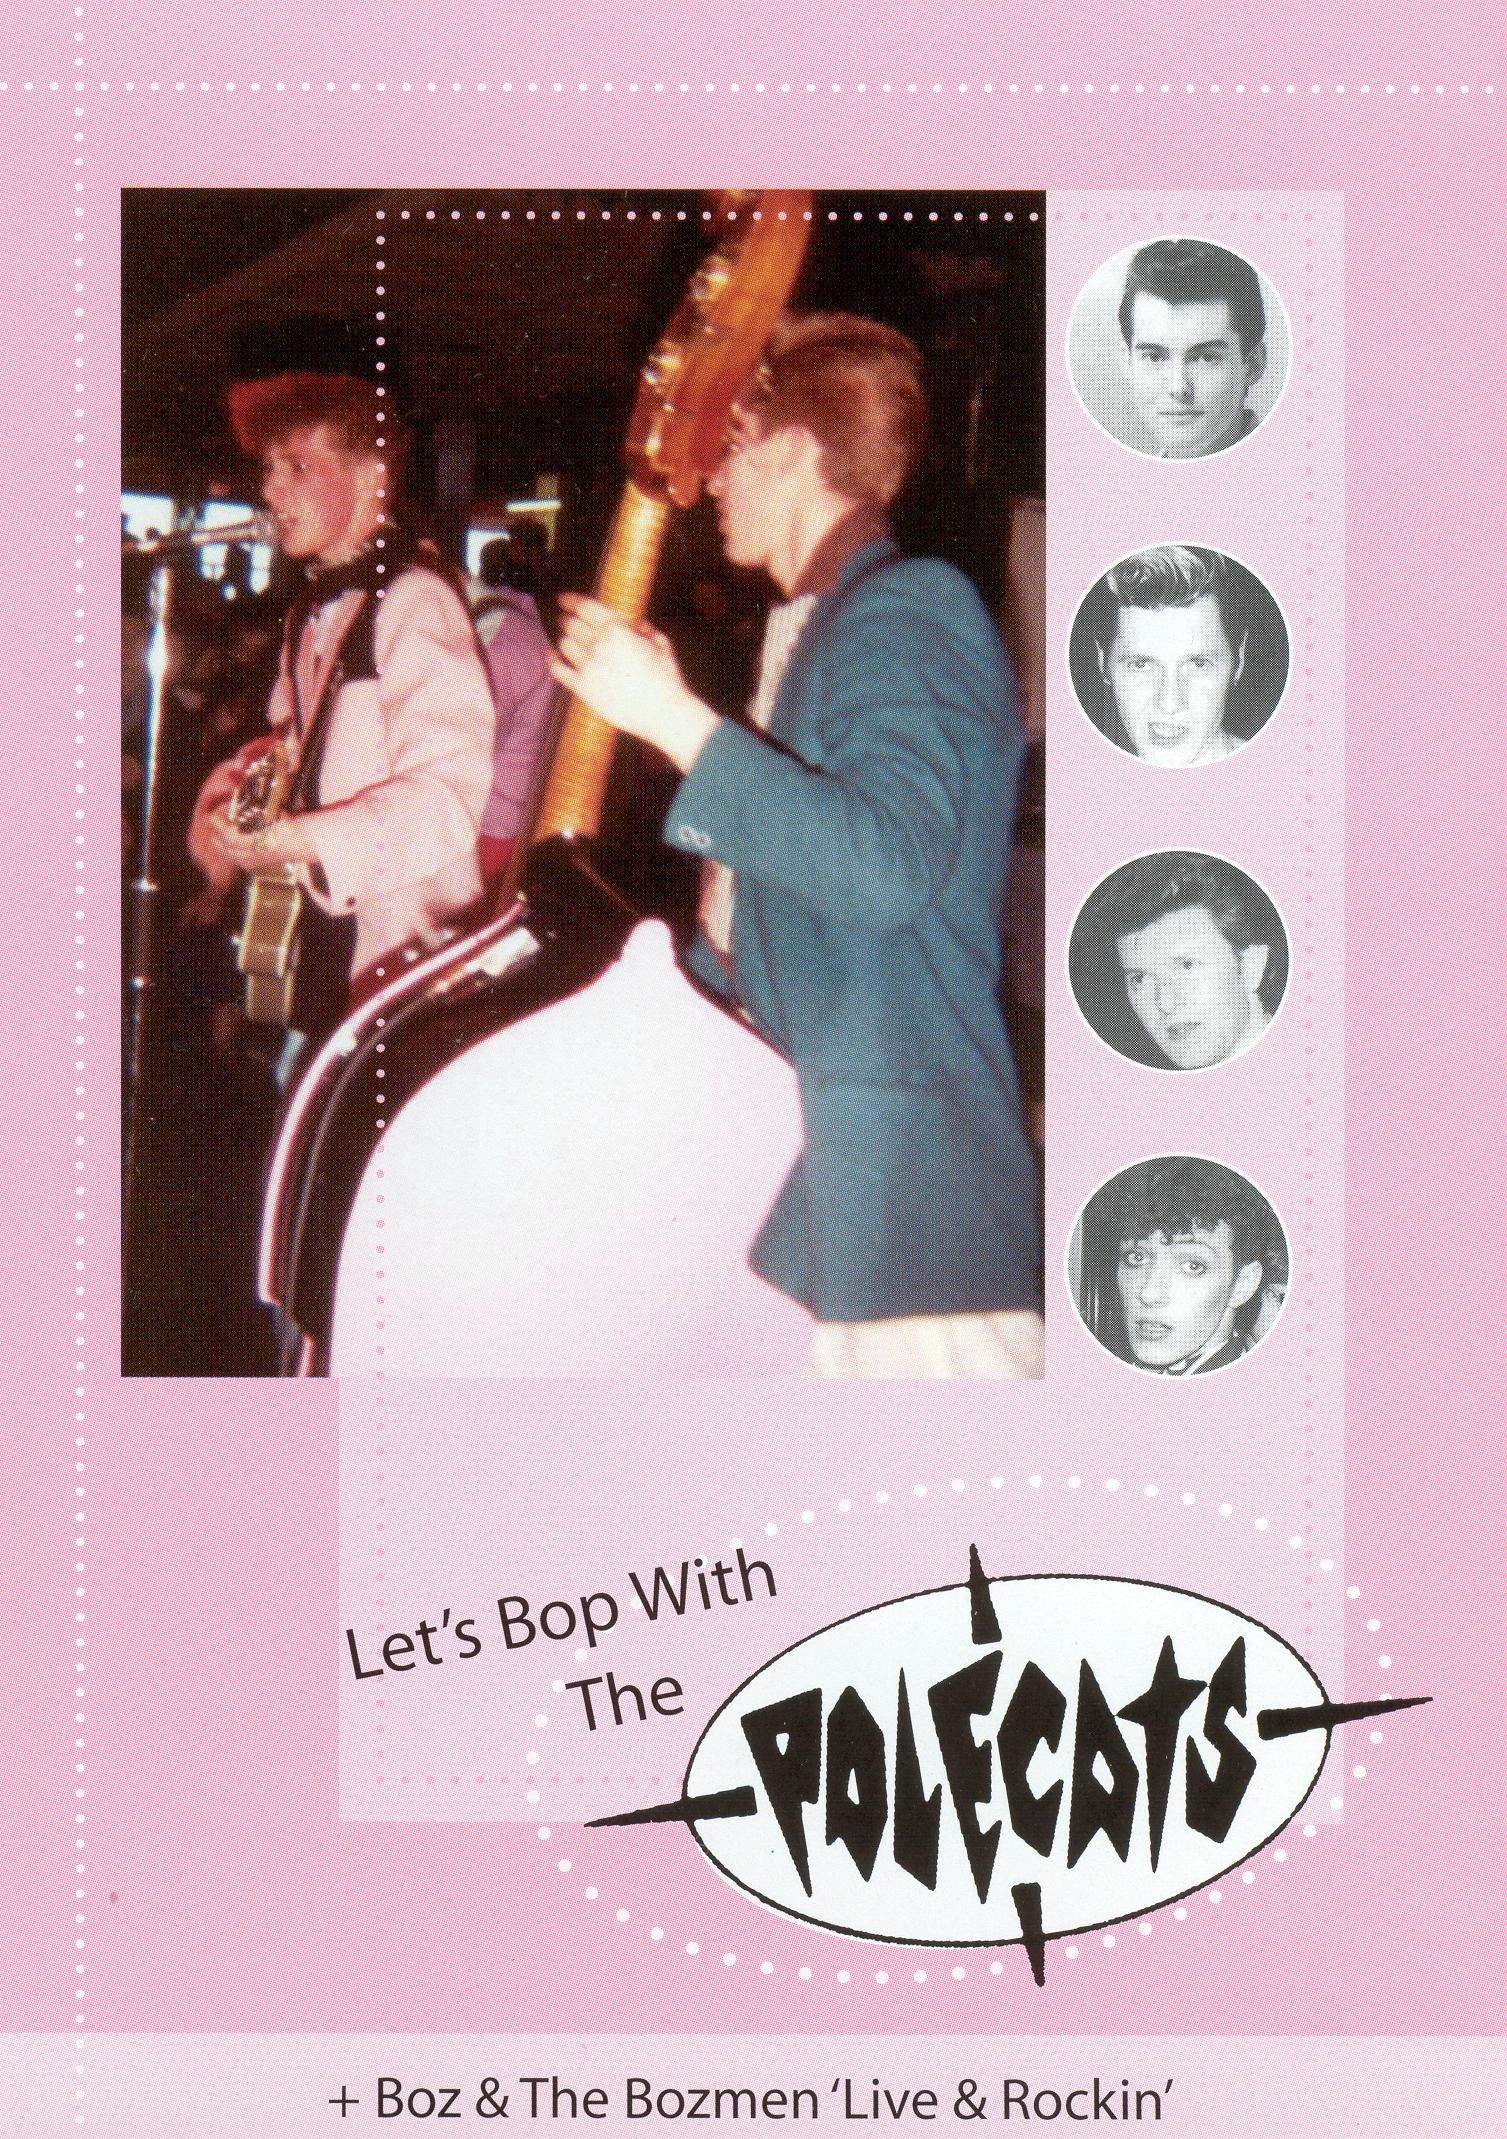 Polecats: Let's Bop With The Polecats